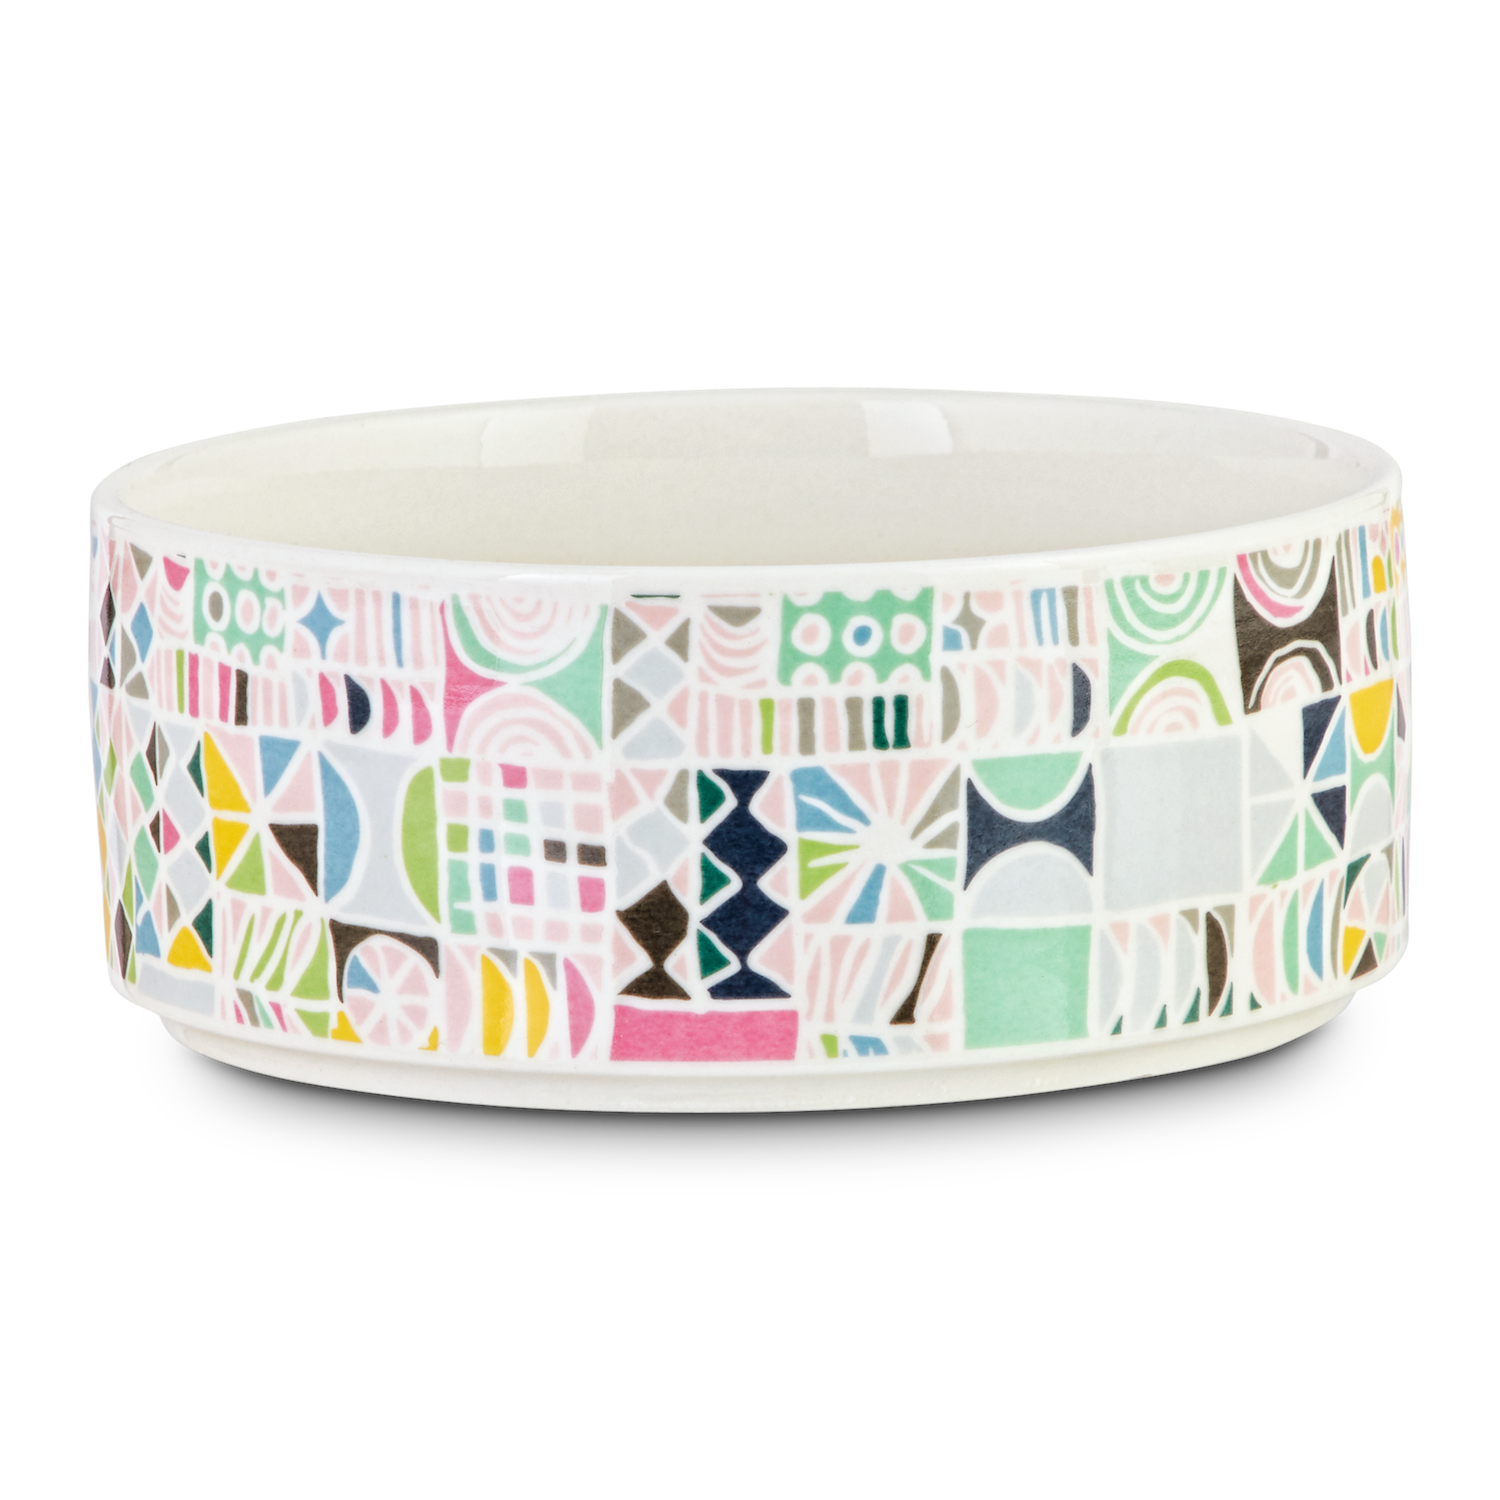 Ceramic pet food bowl with colored patterns